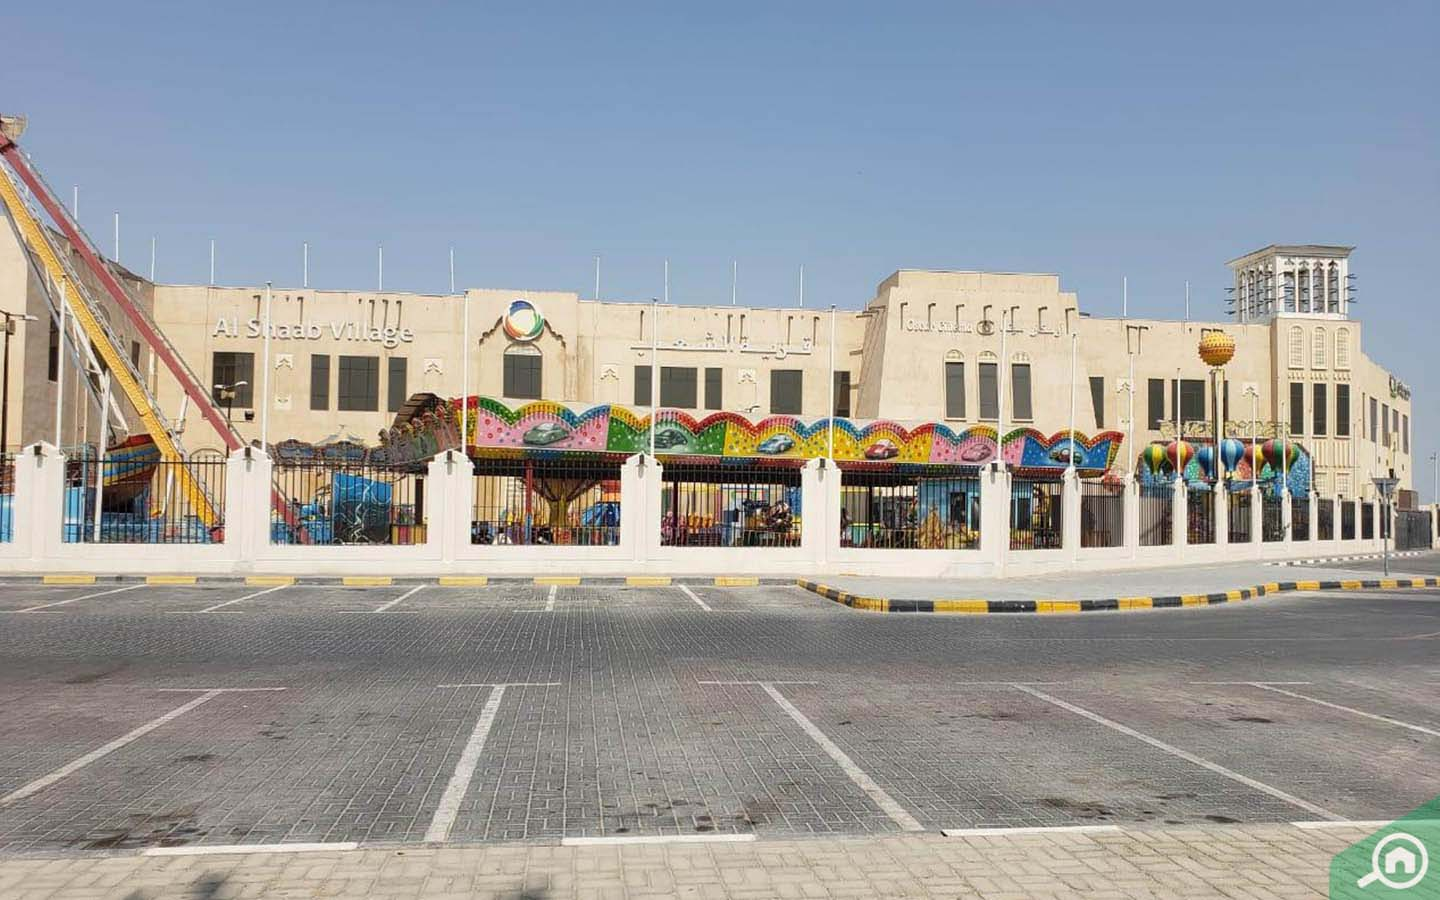 Theme park in Al Shaab Village near Al Sabkha